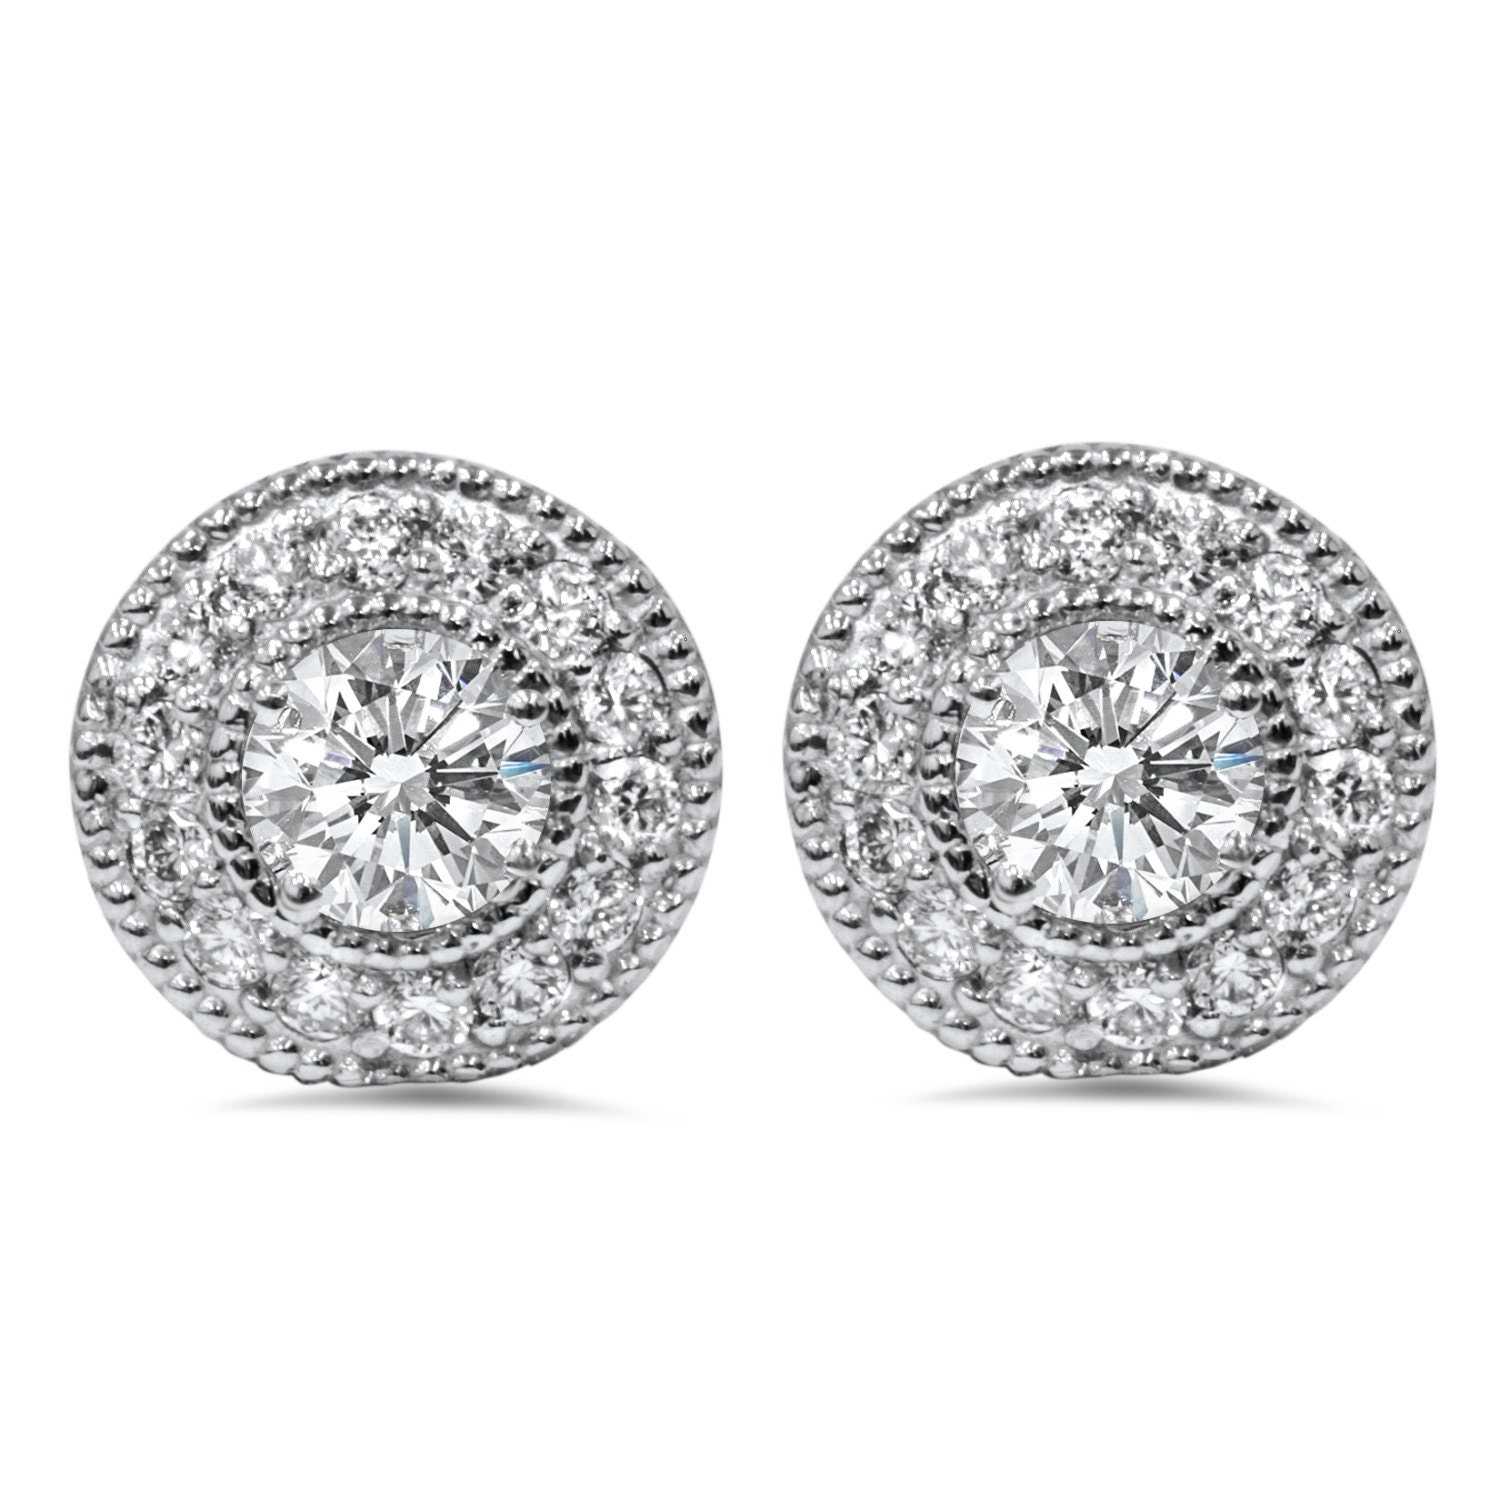 1 50 Carat Diamond Studs Earring Jackets Halo Vintage Antique